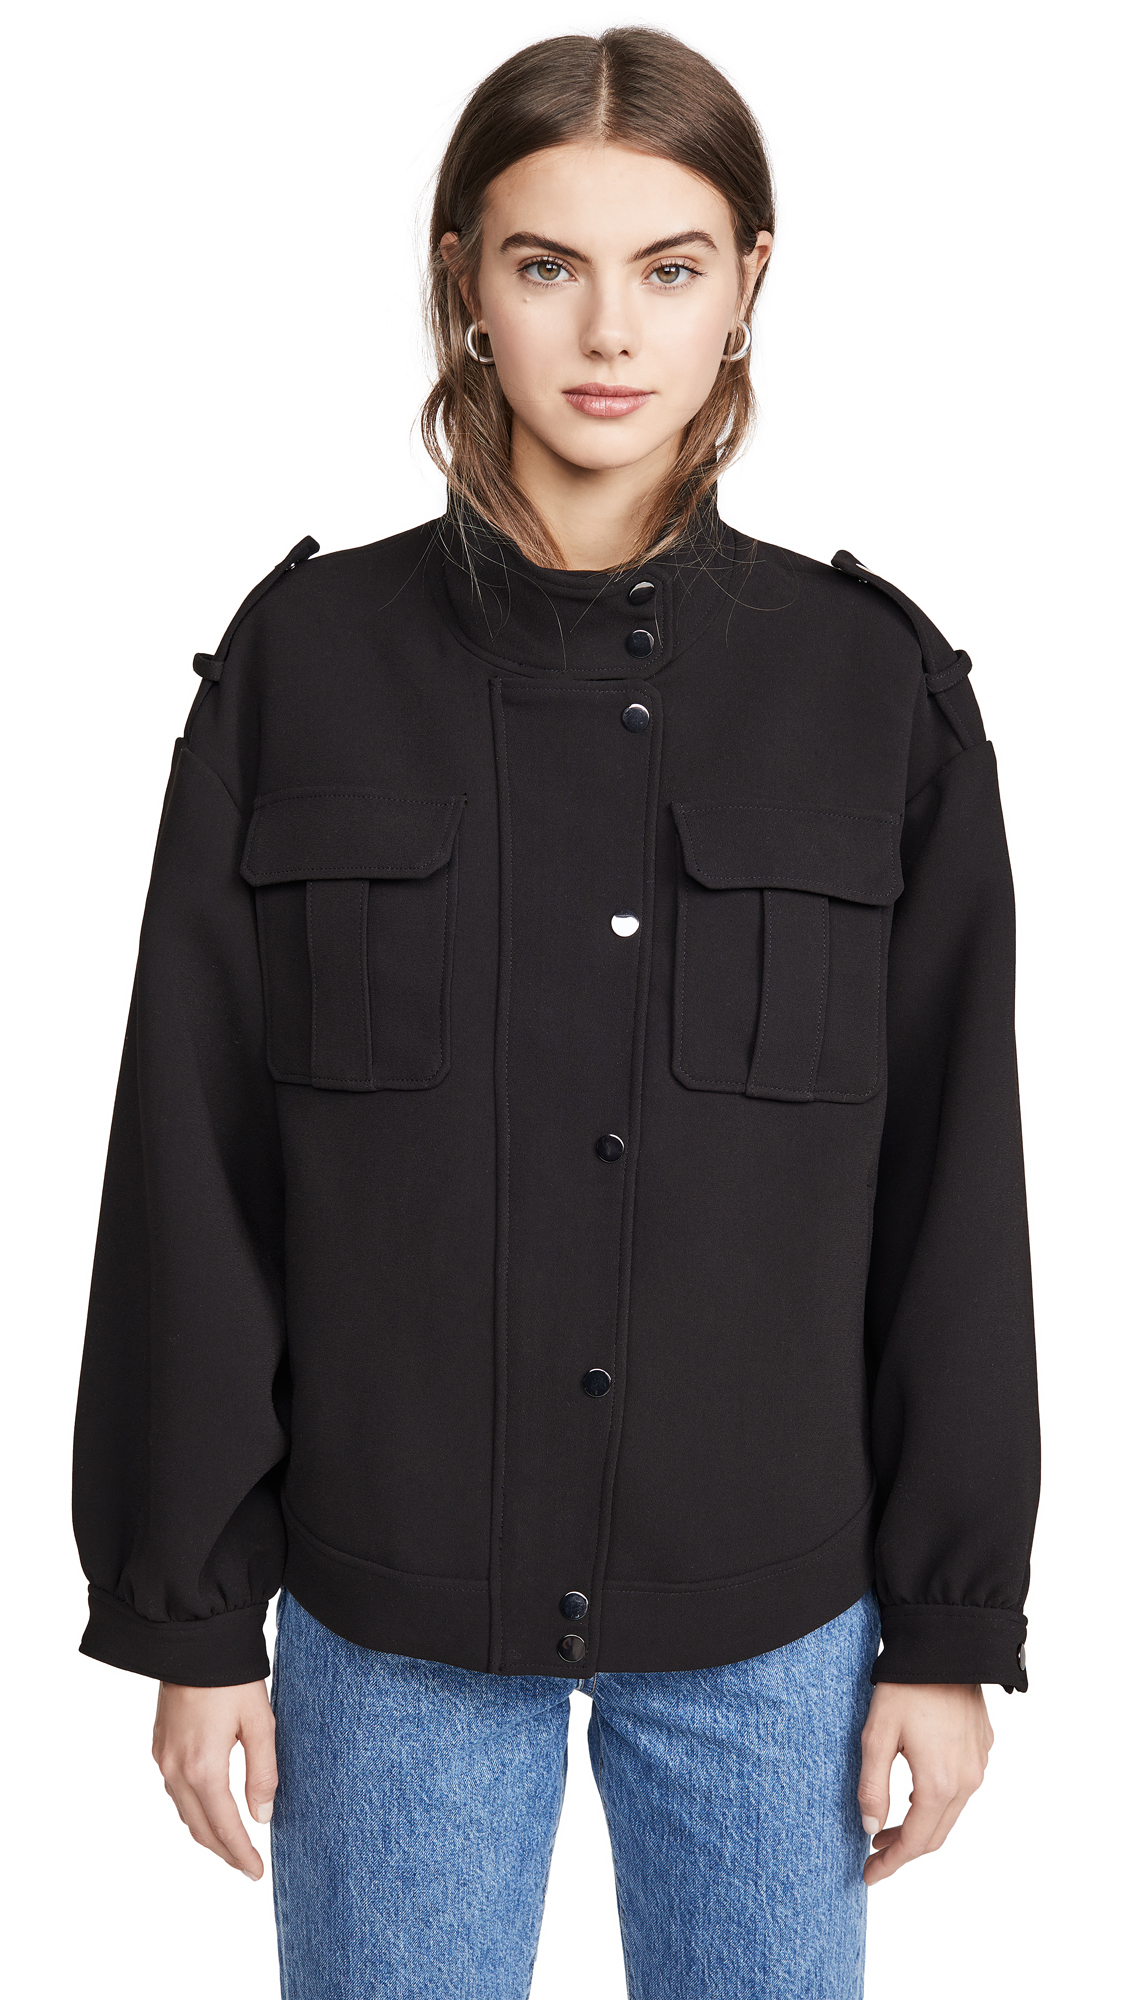 Buy Ba & sh Swing Jacket online beautiful Ba & sh Jackets, Coats, Down Jackets